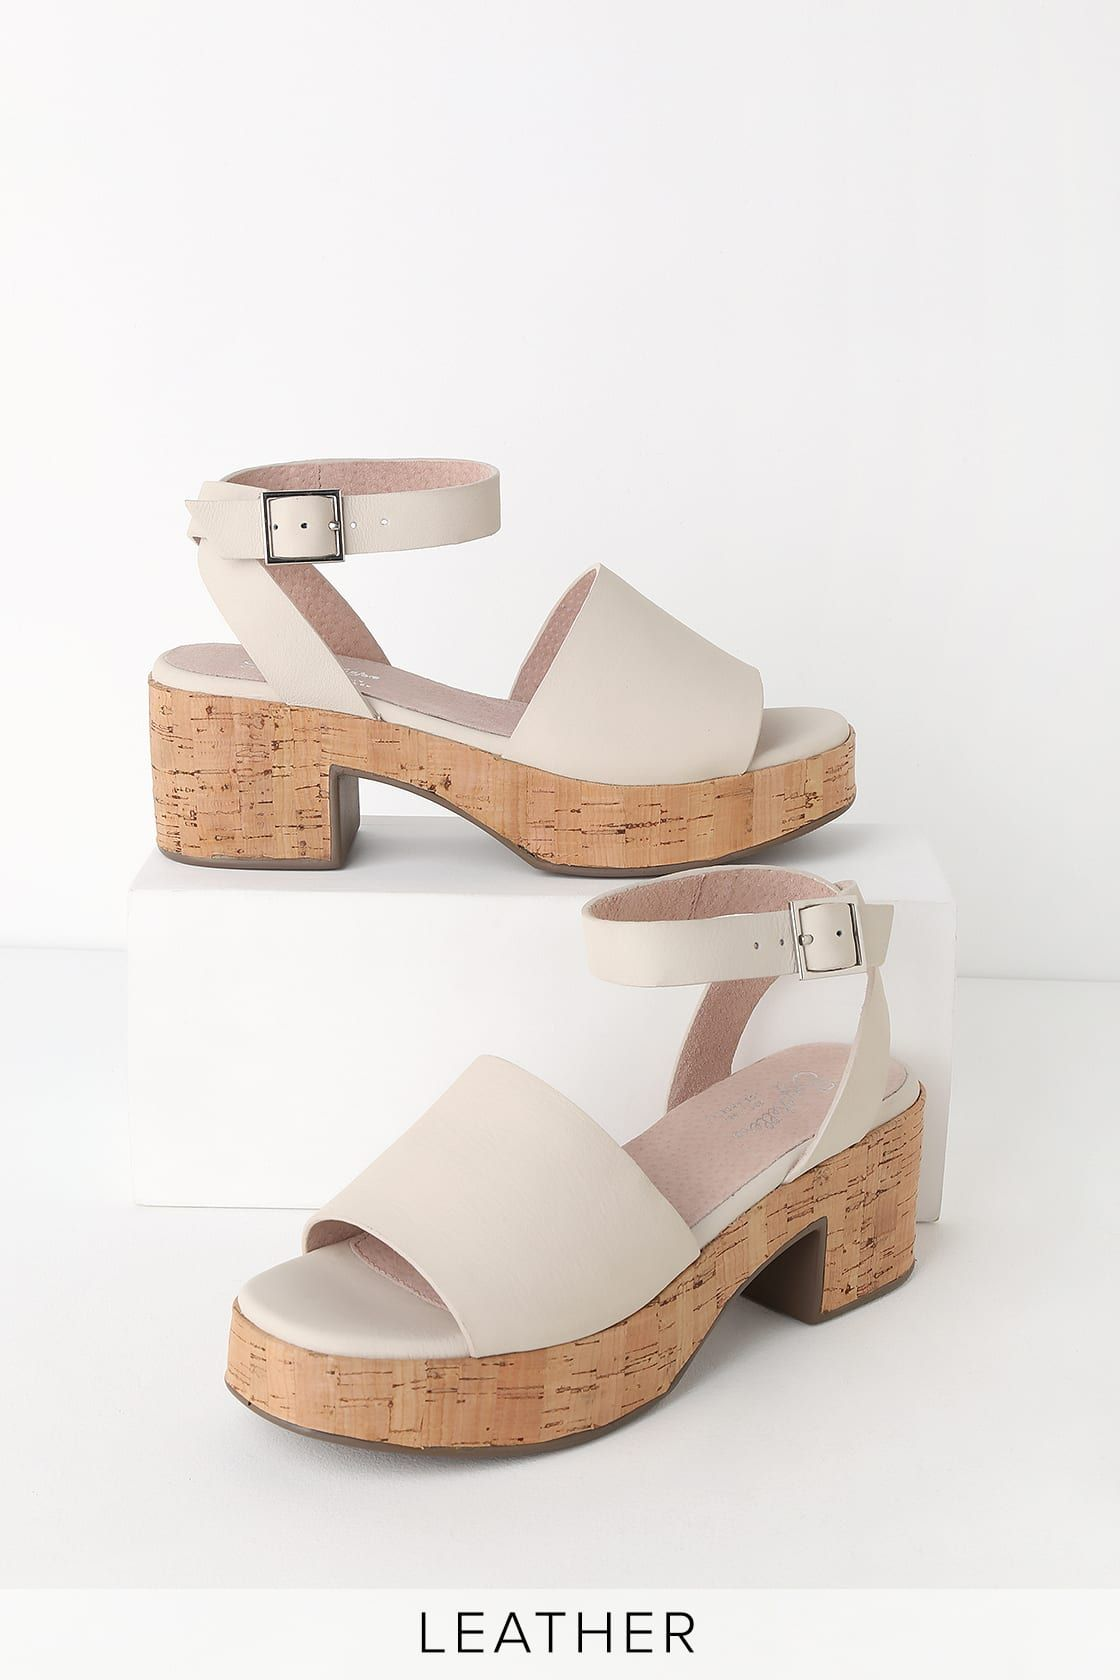 9fc259ffeb Calming Influence White Leather Platform Heels in 2019 | Shoes ...